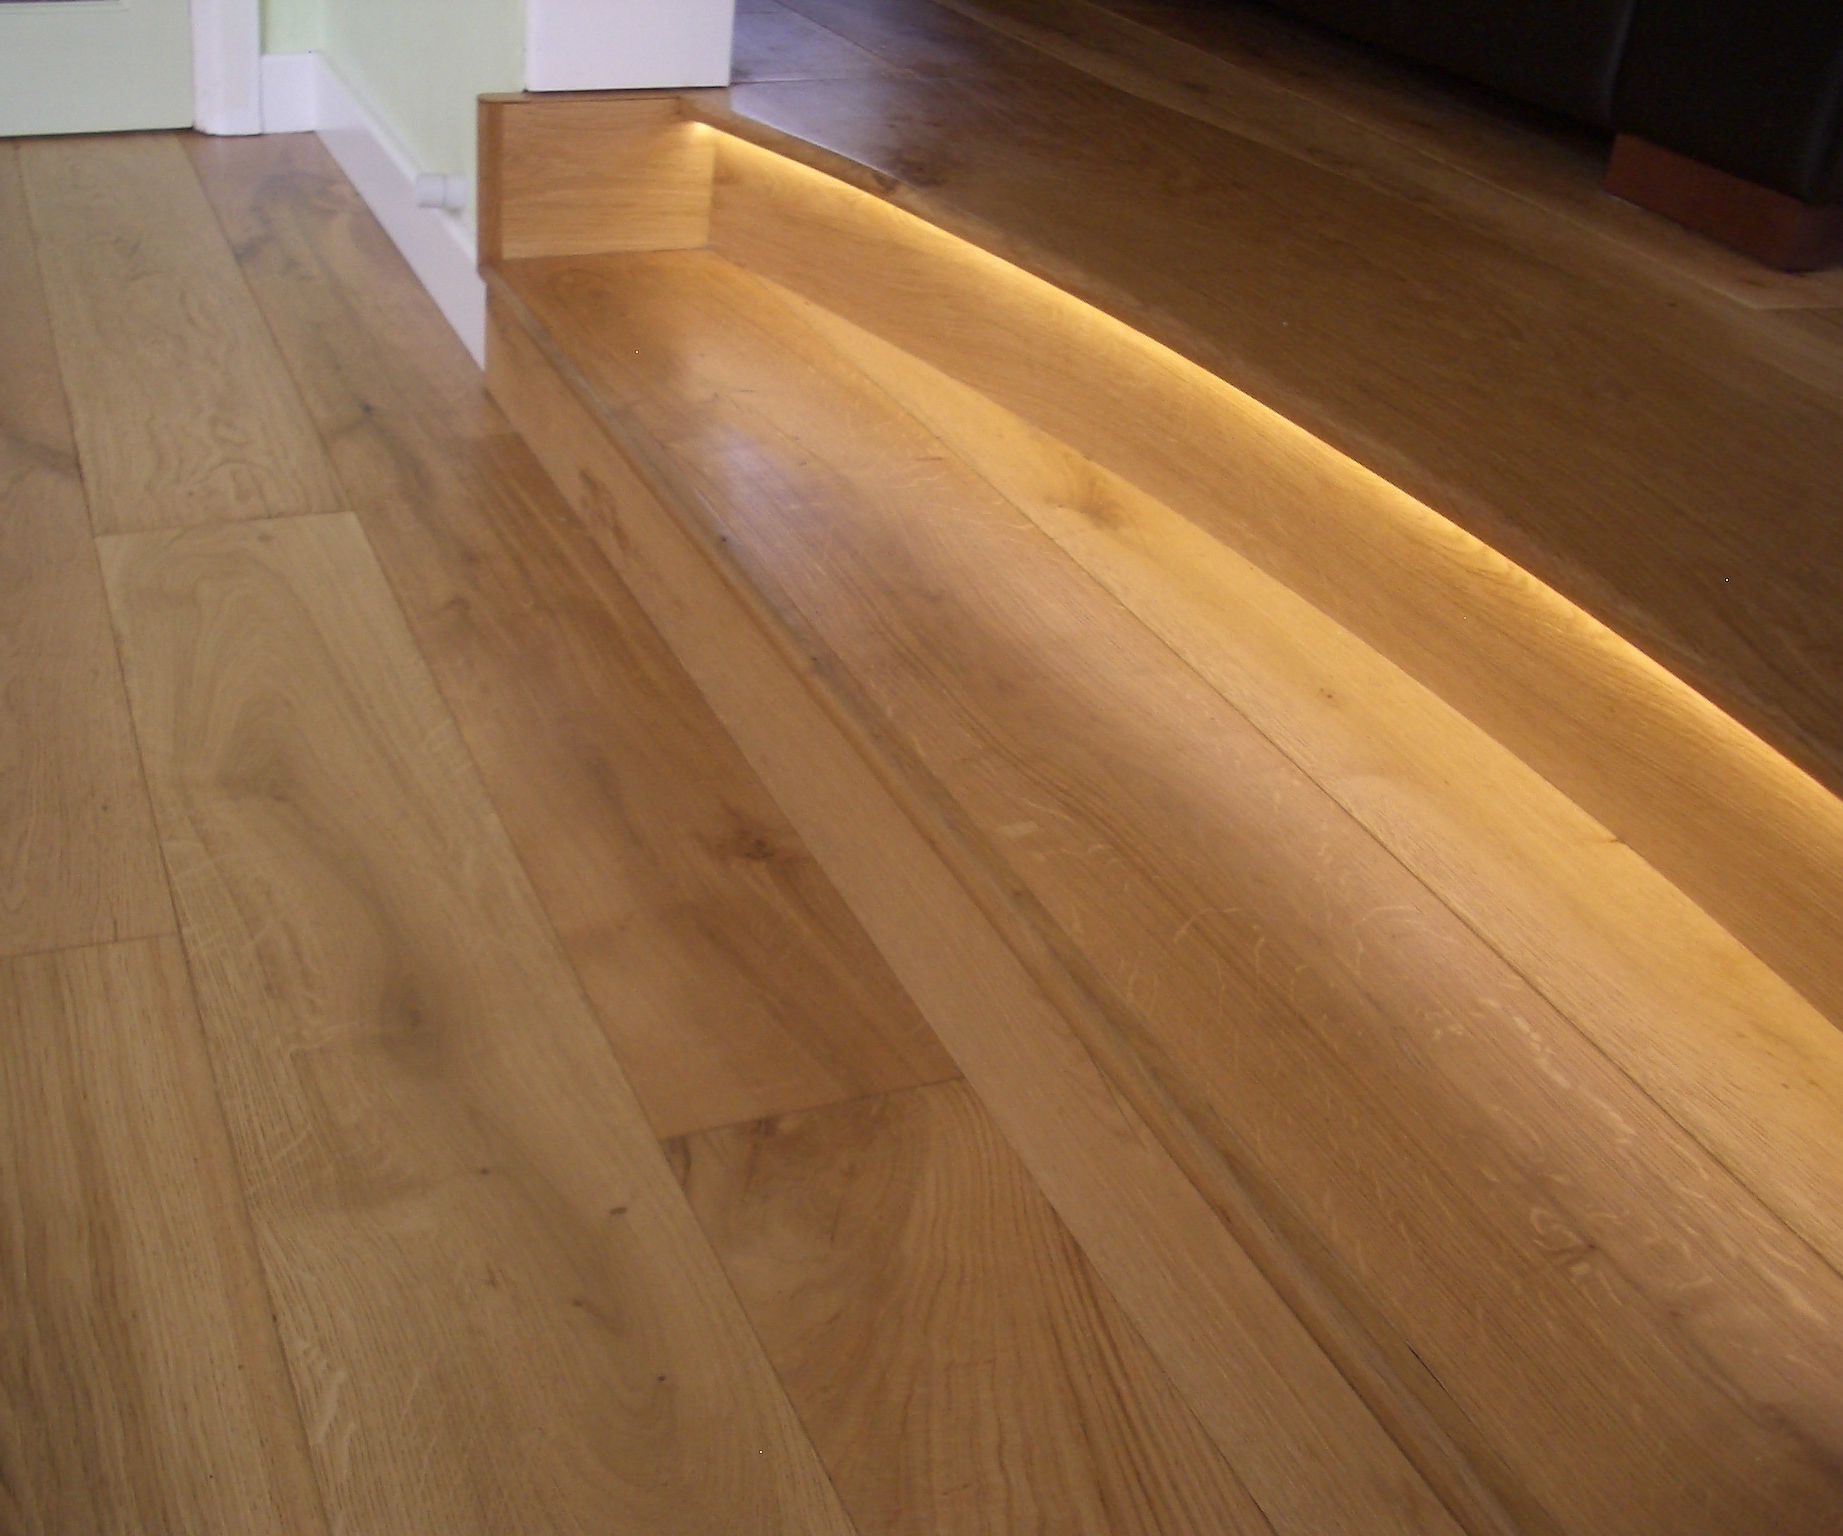 Underlight a Wooden Step the Easy Way